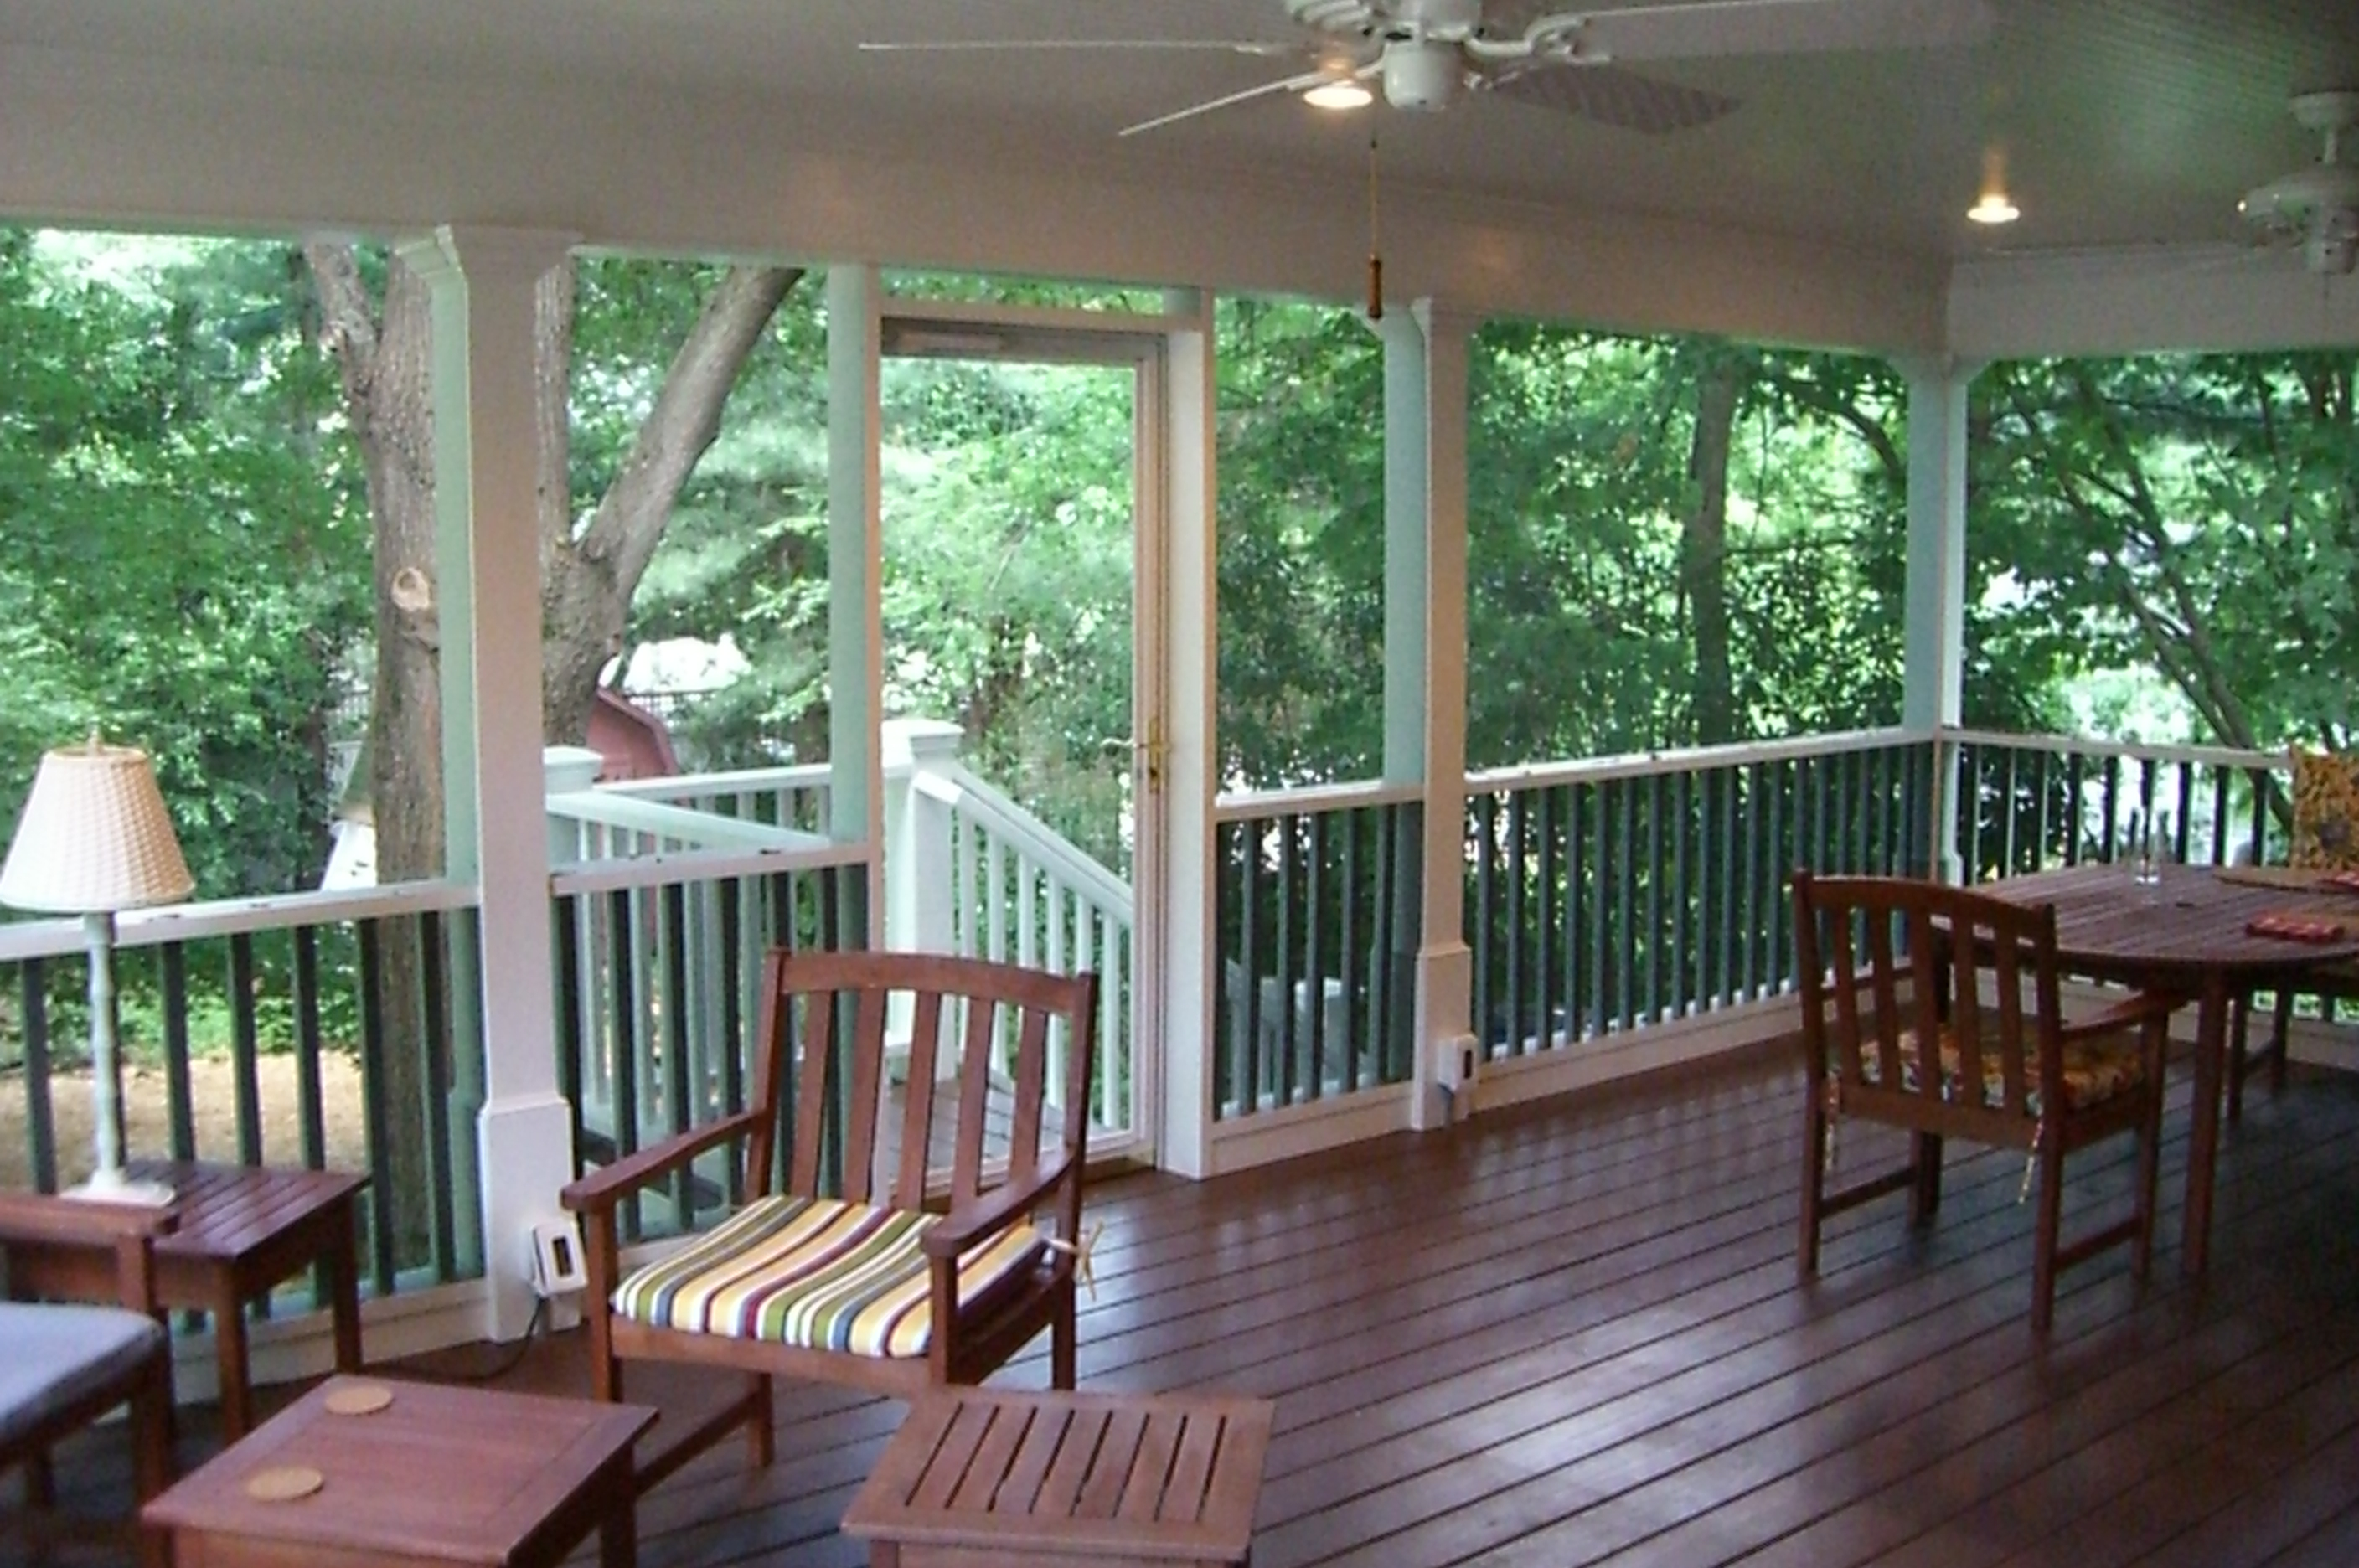 professional a hampshire decks remodeling how deck in building sd screen north to mackenzie porch and